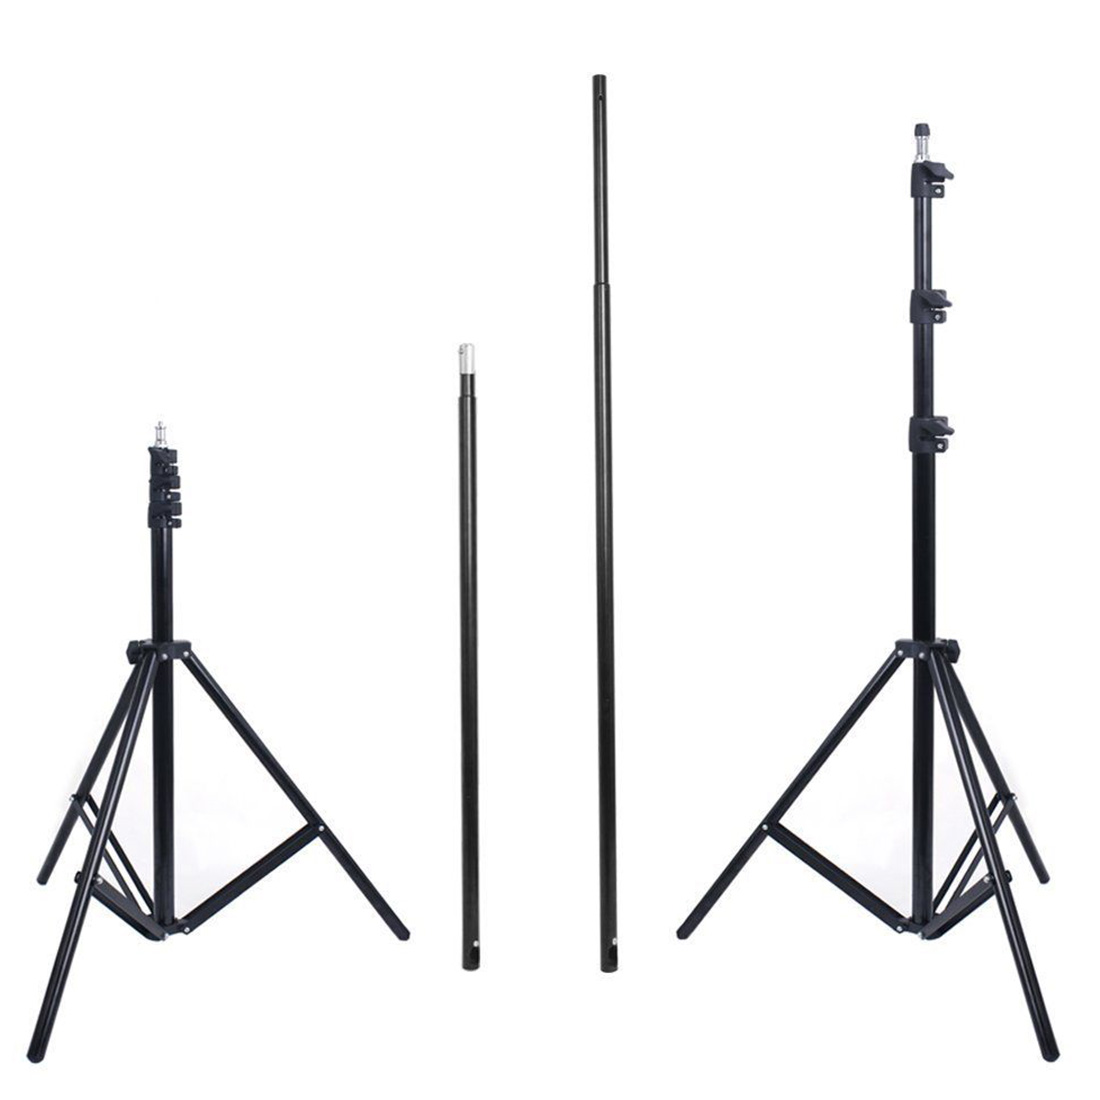 2.8m x 3m Photo Studio Background Backdrop Support Stand Kit + Free Carry Bag блузка mango 43080028